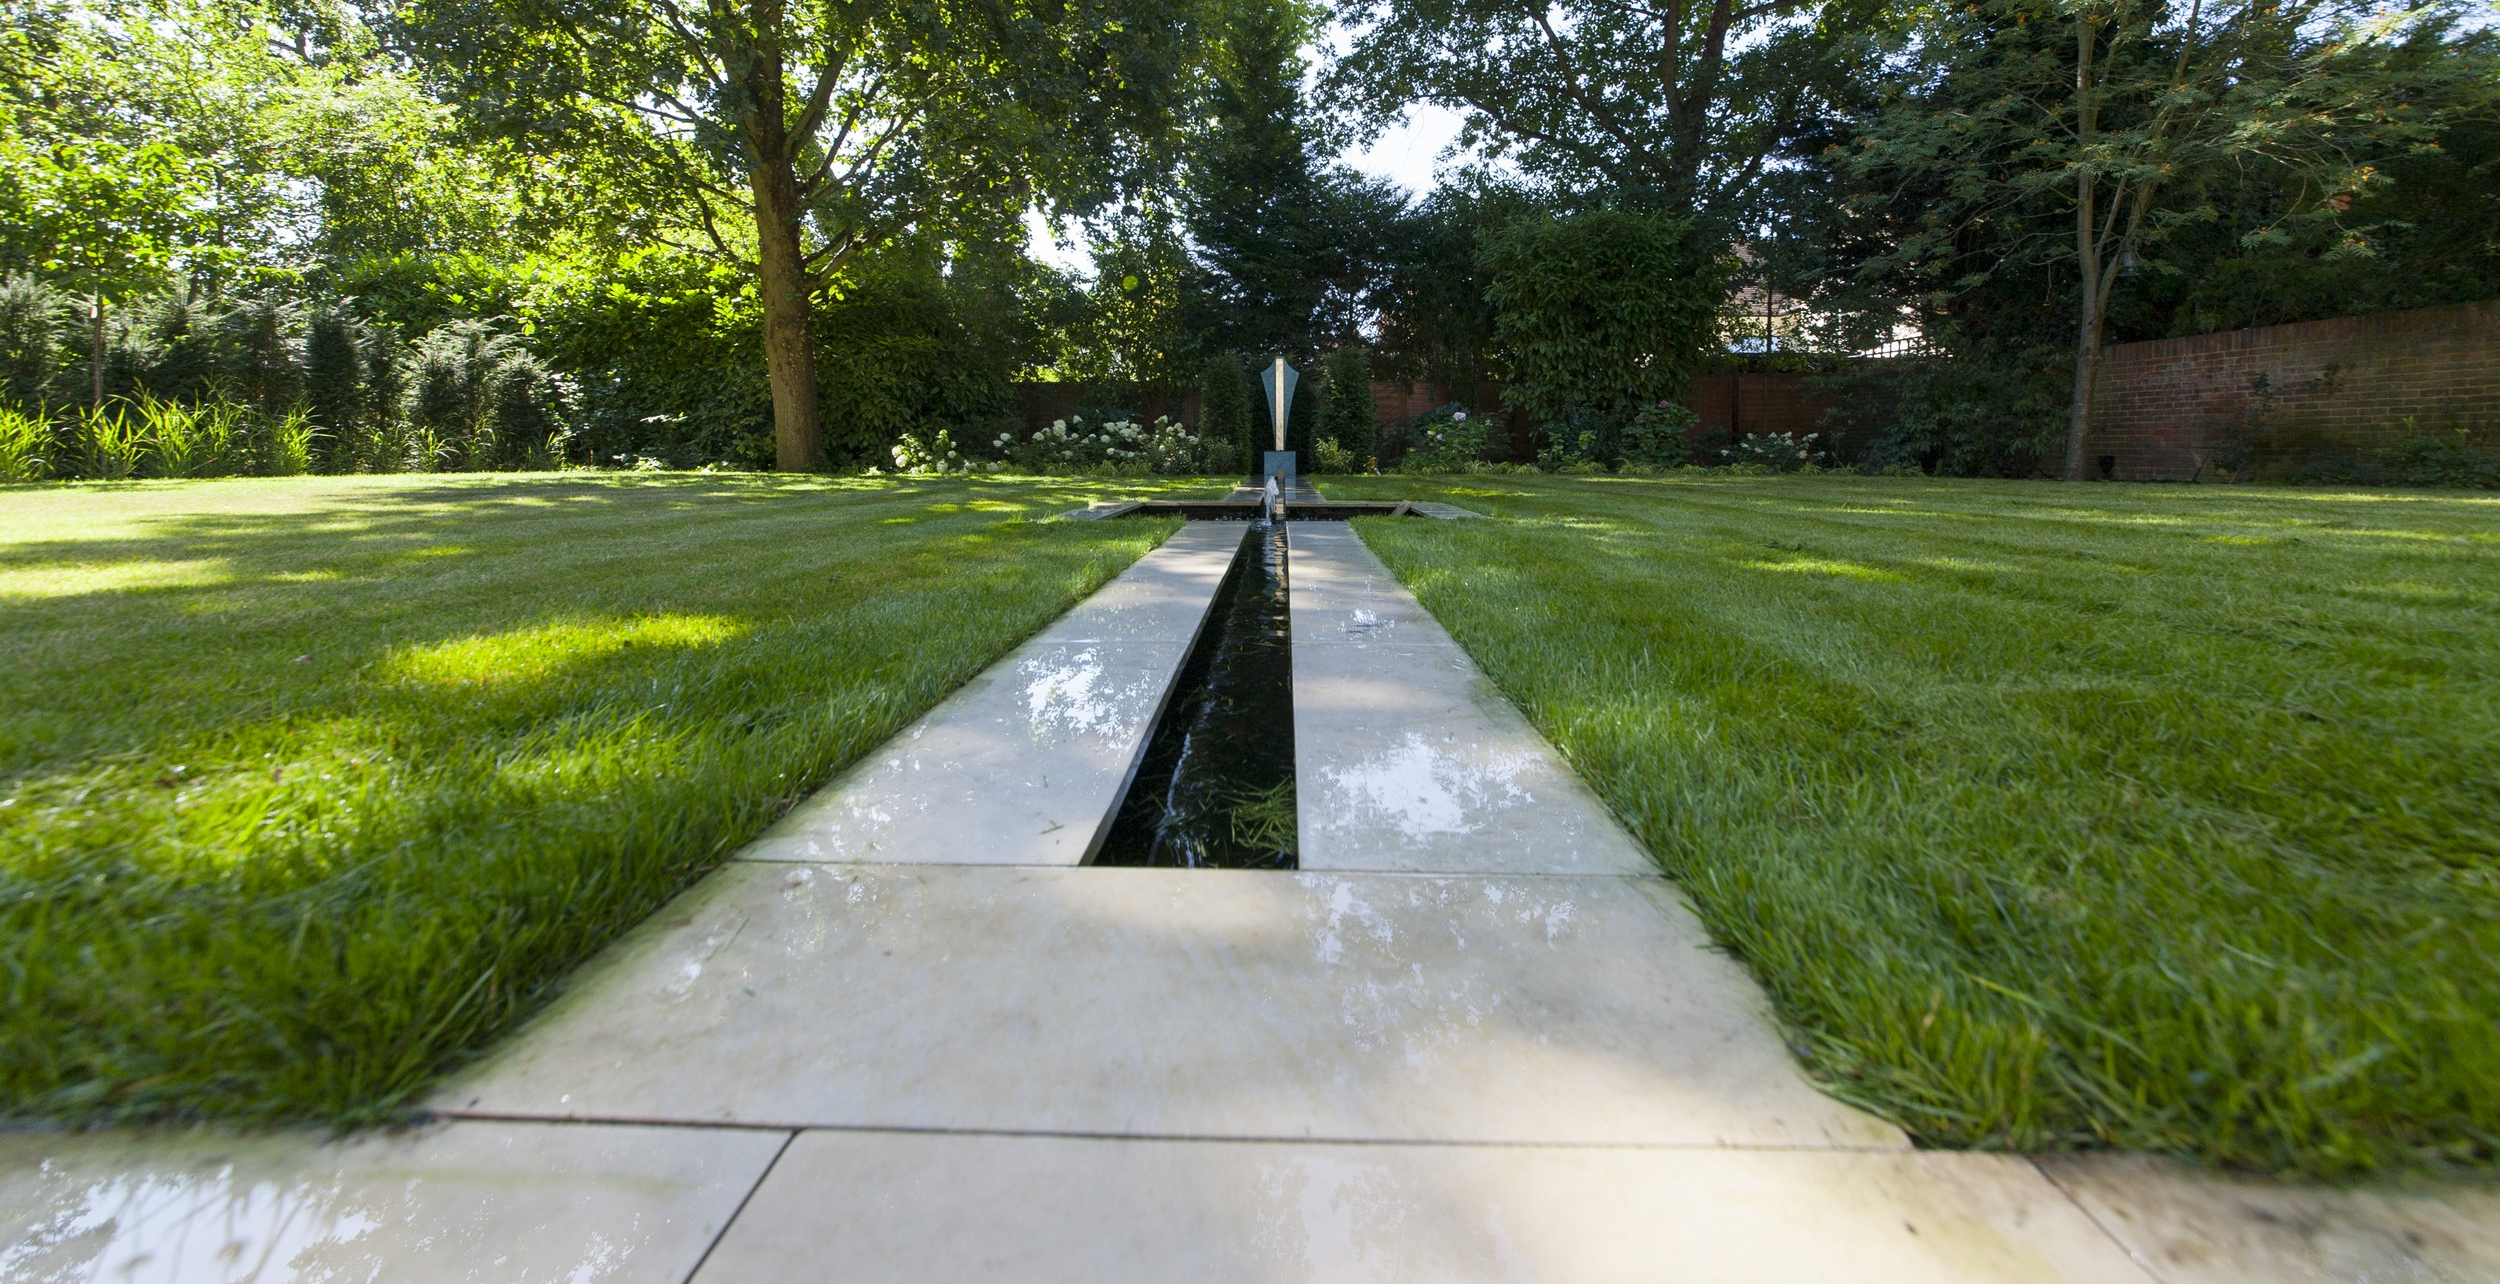 - The Rill bisects the main lawn.